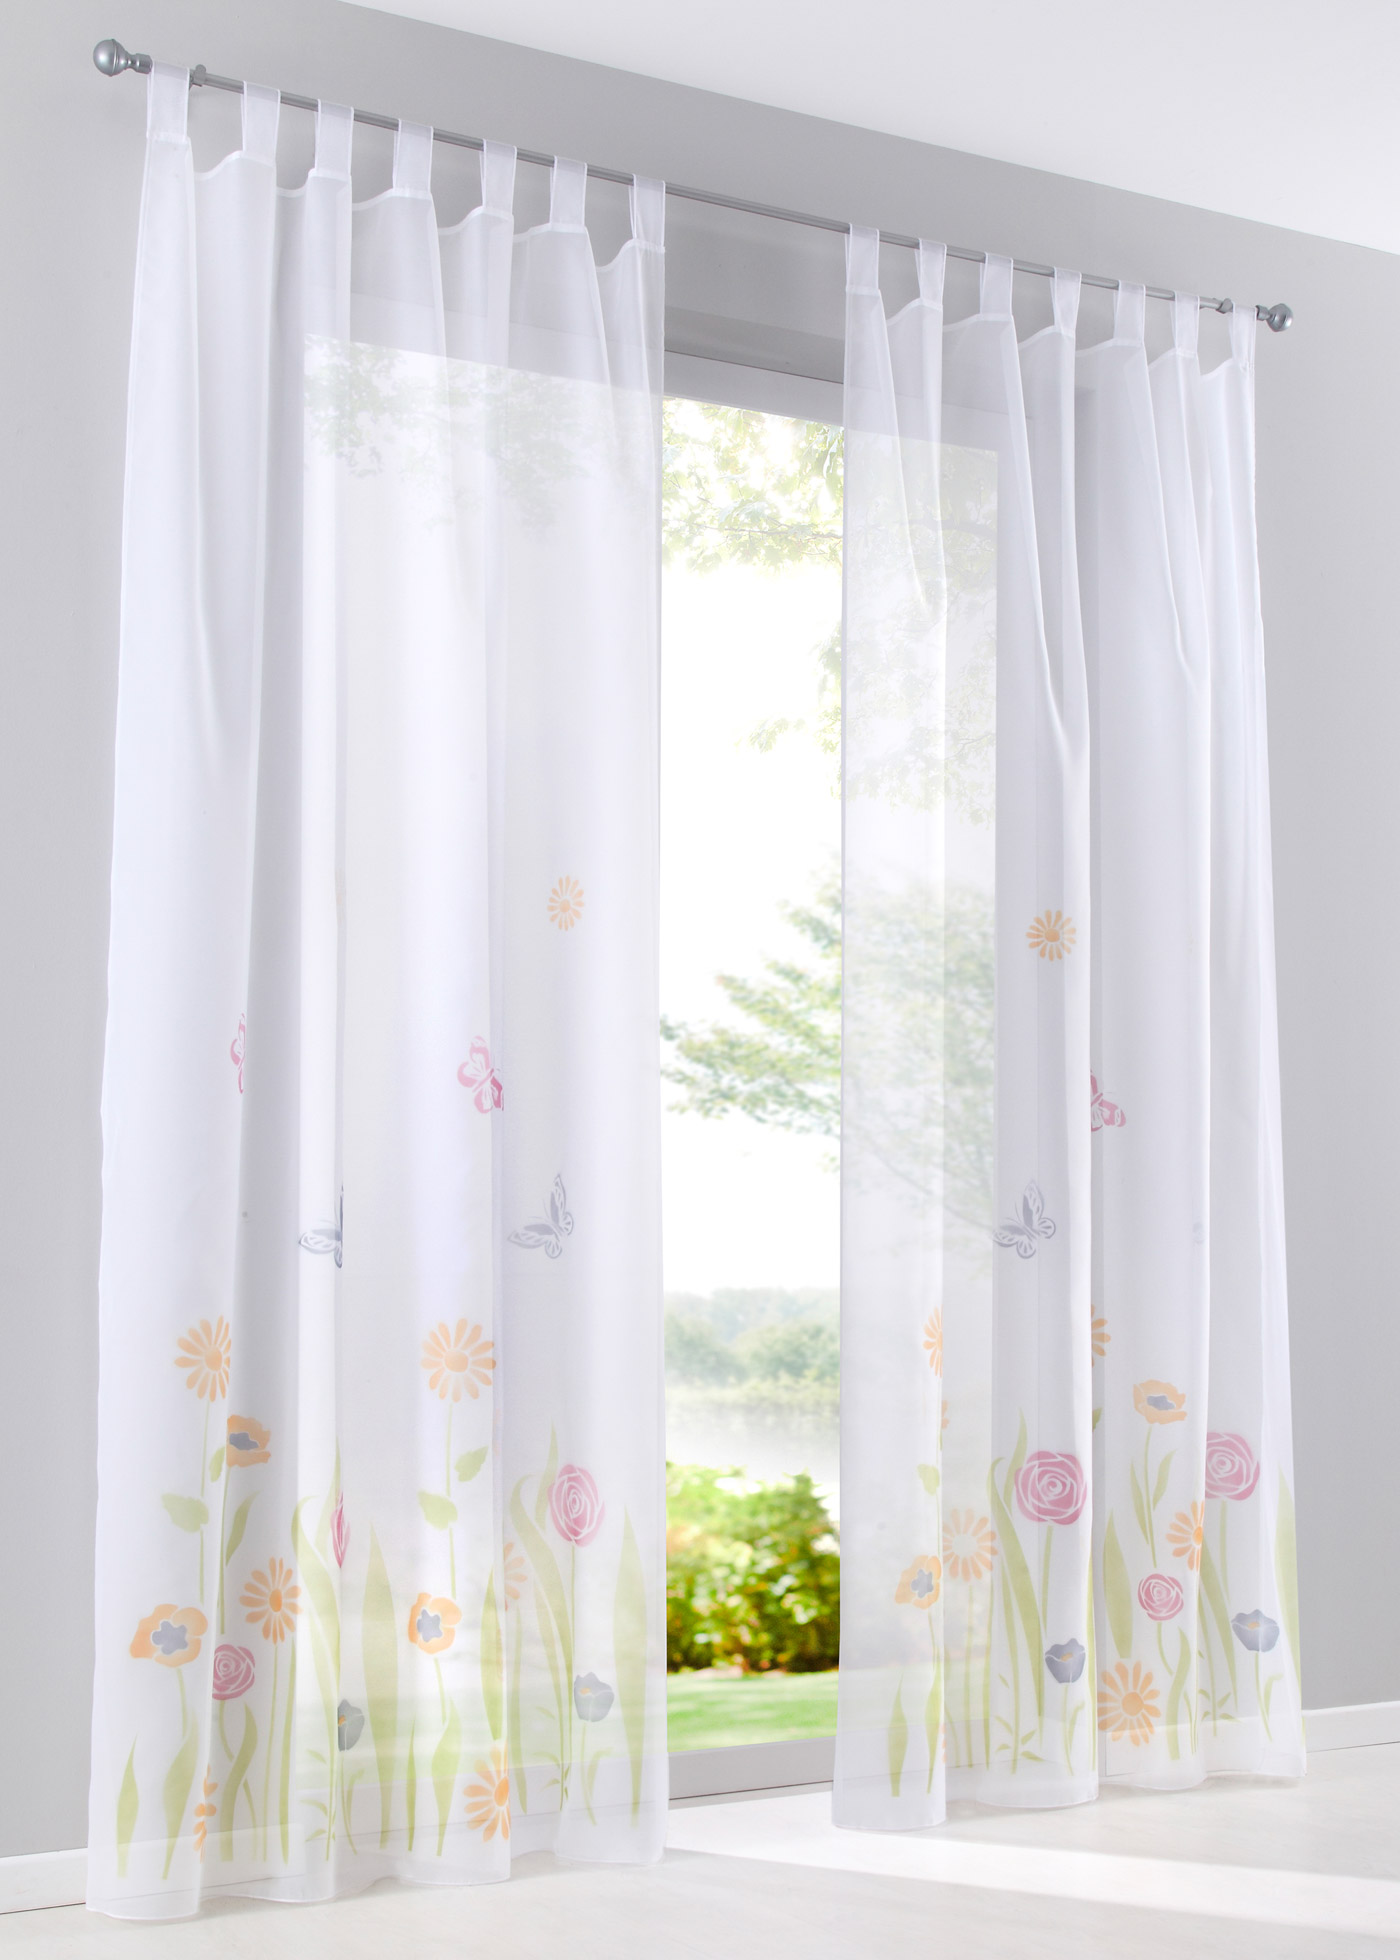 Bpc Living Bonprix Collection Transparente Gardine Mit Blumen 1er Pack In Grün Bonprix